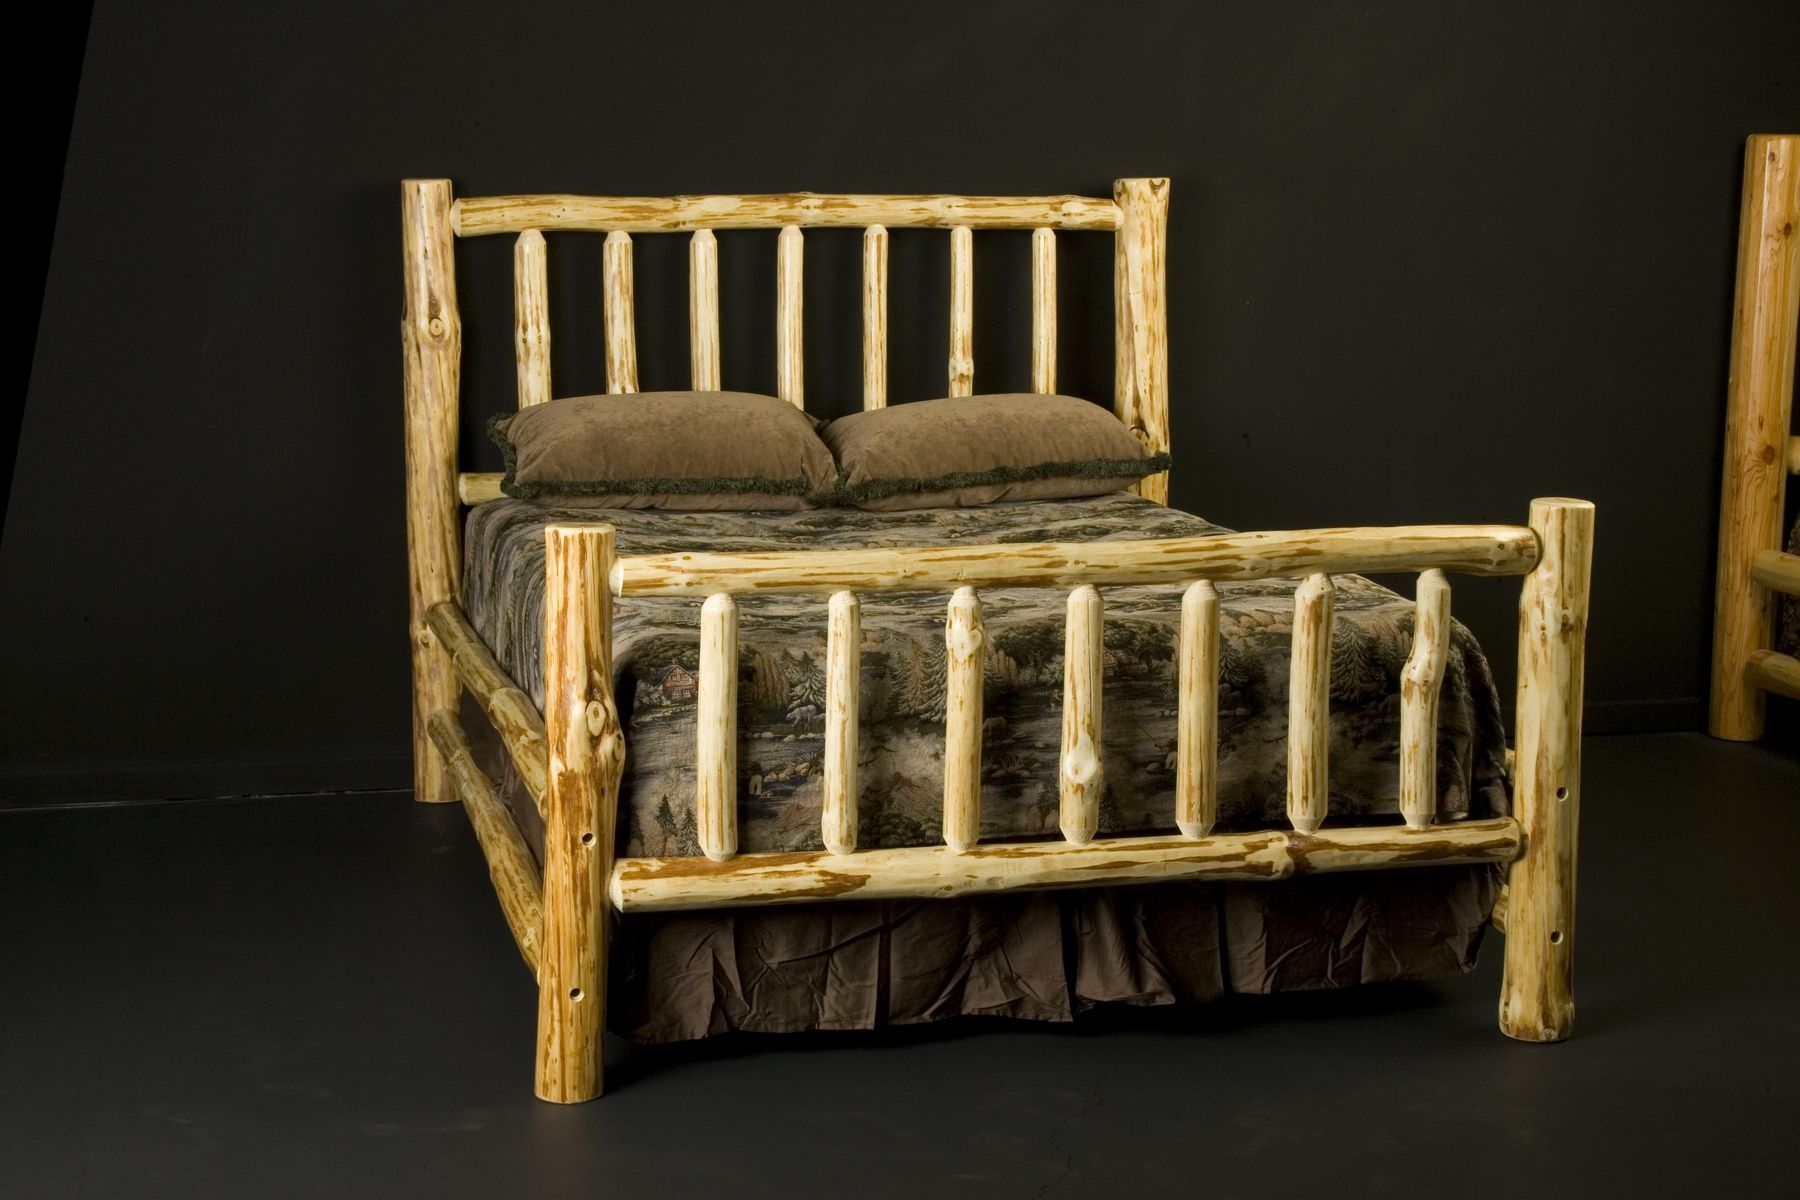 custom made wilderness log bed frame